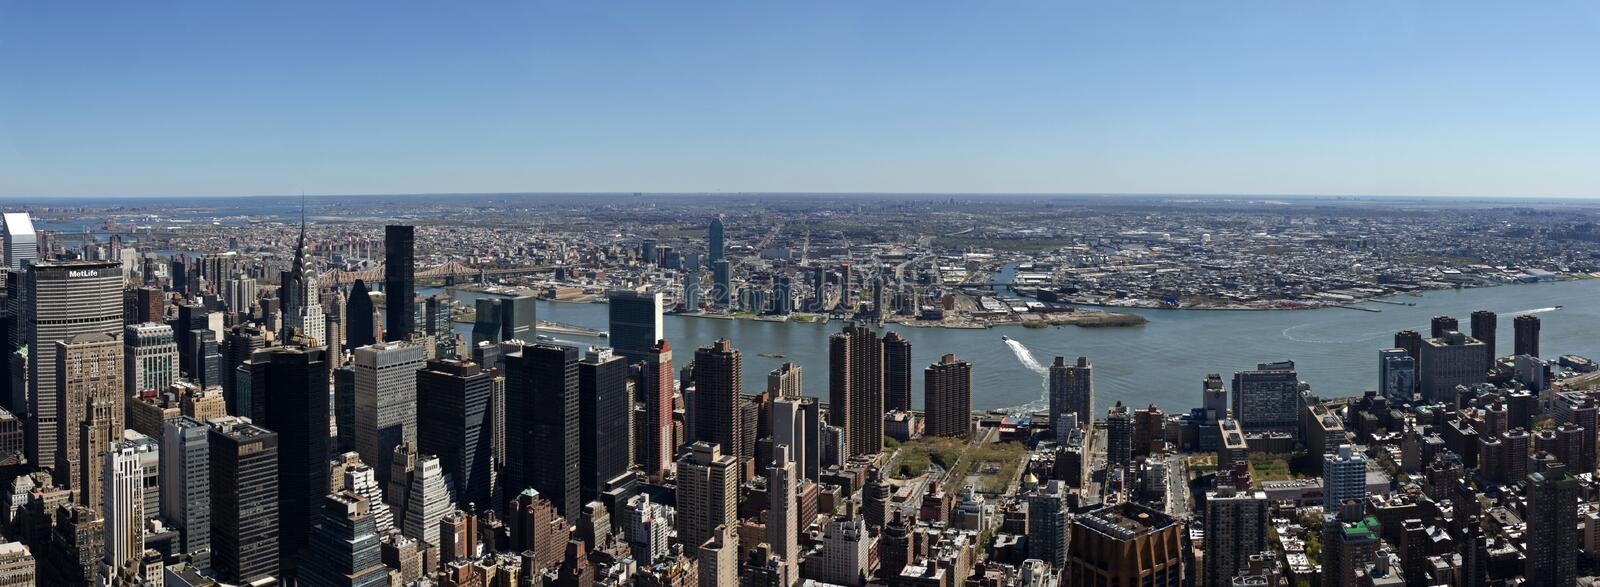 Empire State Building View royalty free stock photos